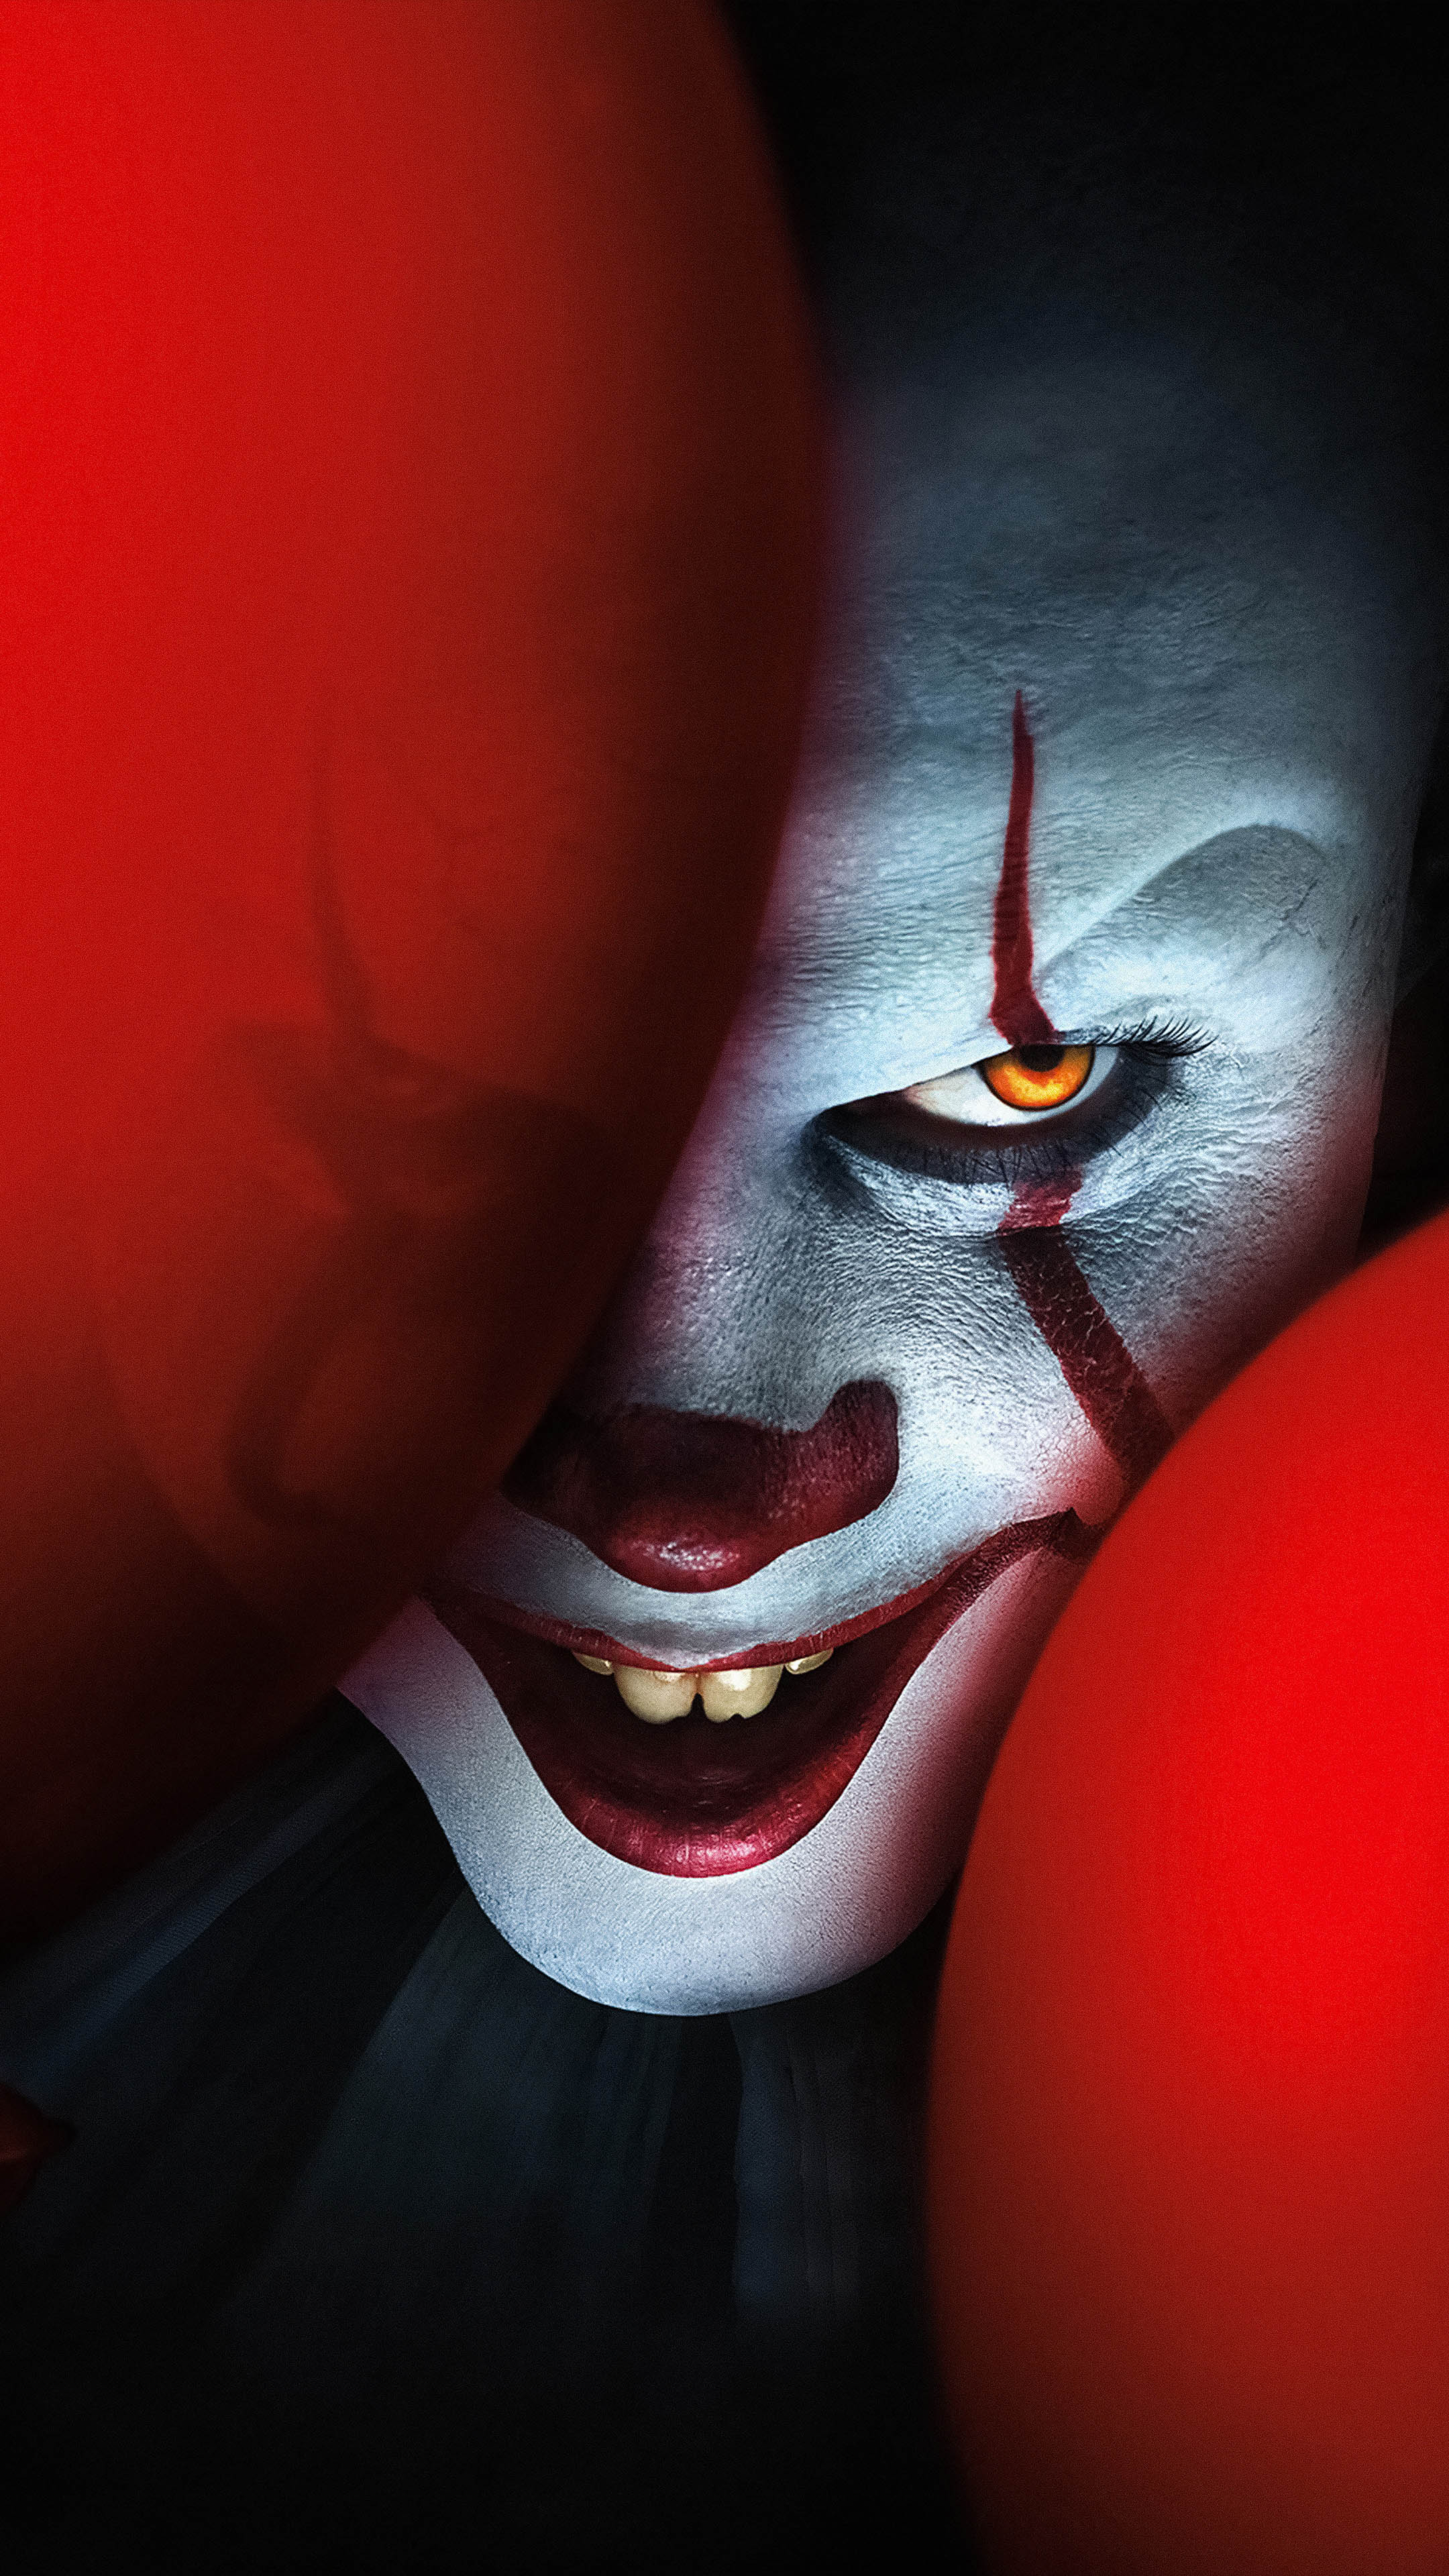 The Clown Pennywise It Chapter Two 2019 Free 4k Ultra Hd